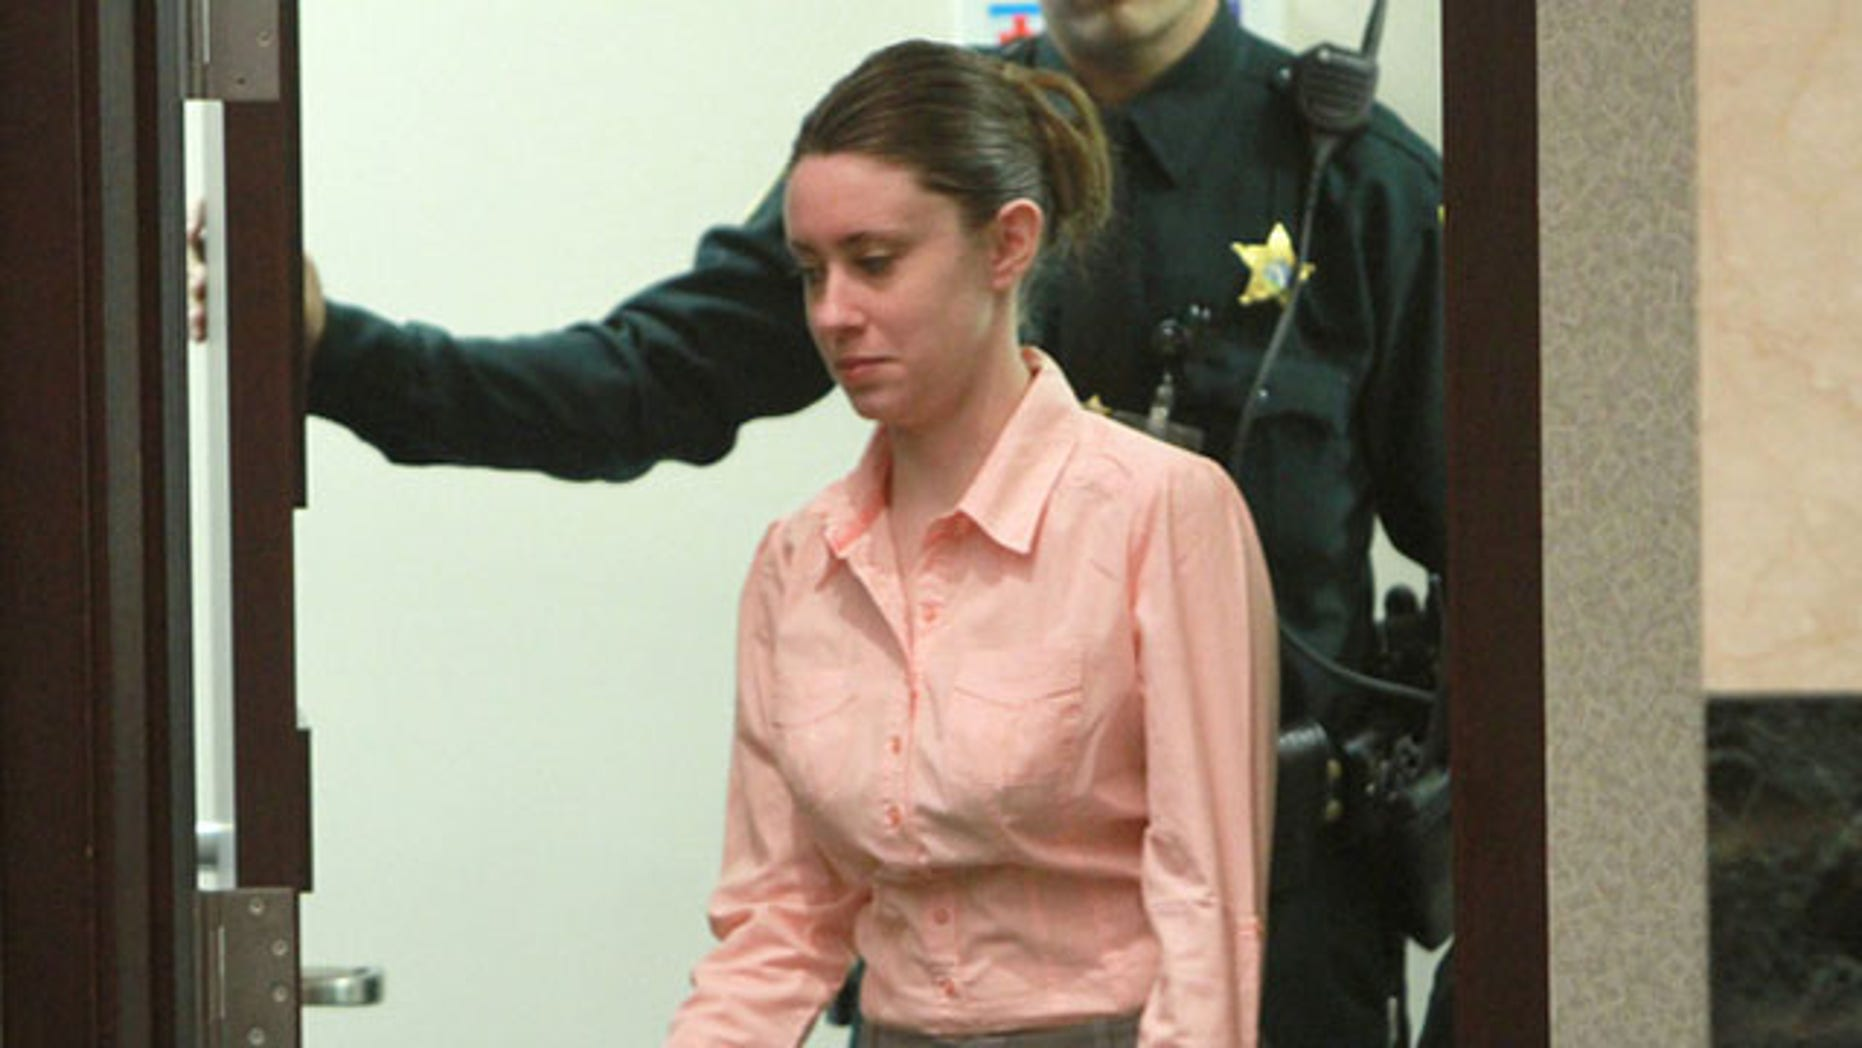 June 8: Casey Anthony walks into the Orlando court to hear testimony from a forensic computer expert.